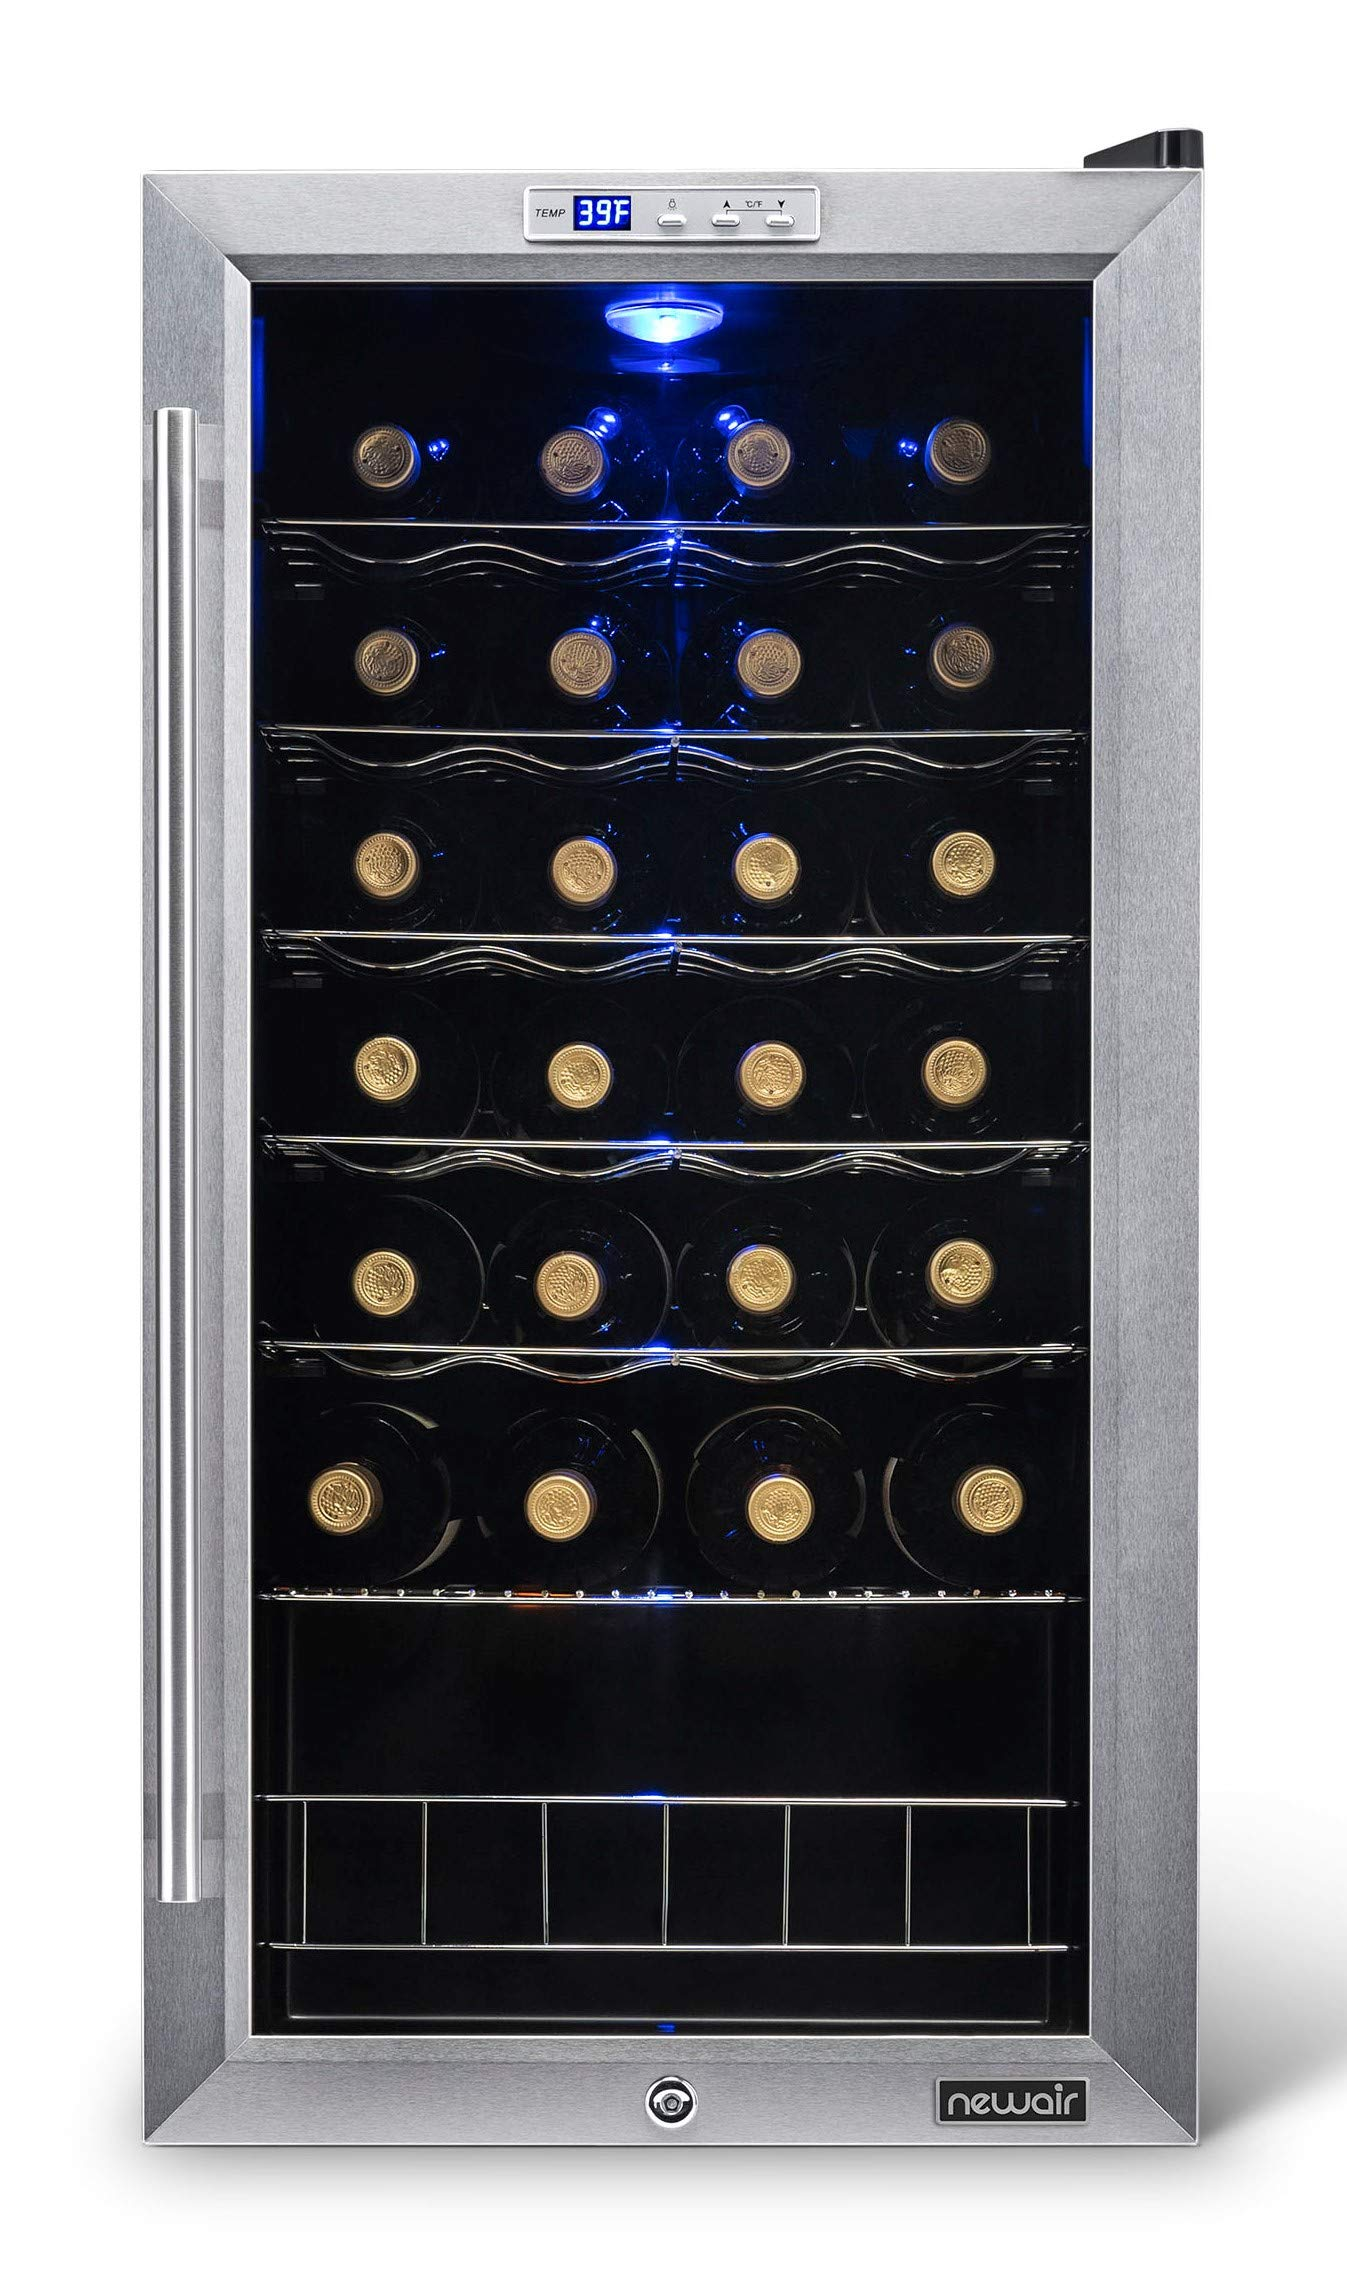 NewAir Wine Cooler and Refrigerator, 27 Bottle Freestanding Wine Chiller Fridge, Stainless steel with Glass Door, AWC-270E by NewAir